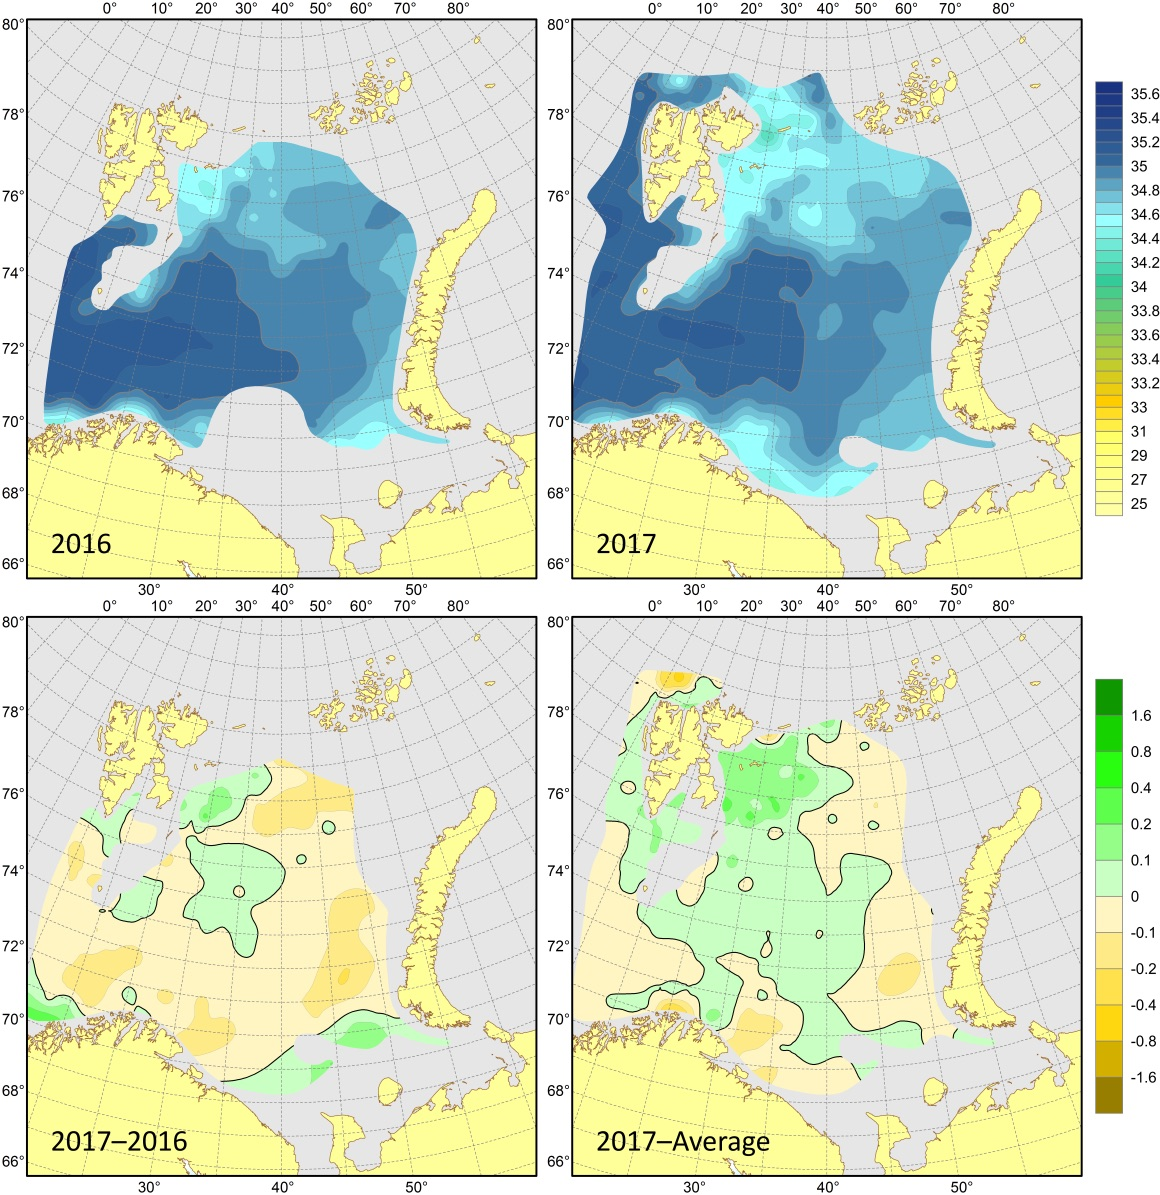 Figure 3.1.13. 100 m salinities in August–October 2016 (upper left) and 2017 (upper right), their differences between 2017 and 2016 (lower left) and anomalies in August–October 2017 (lower right).